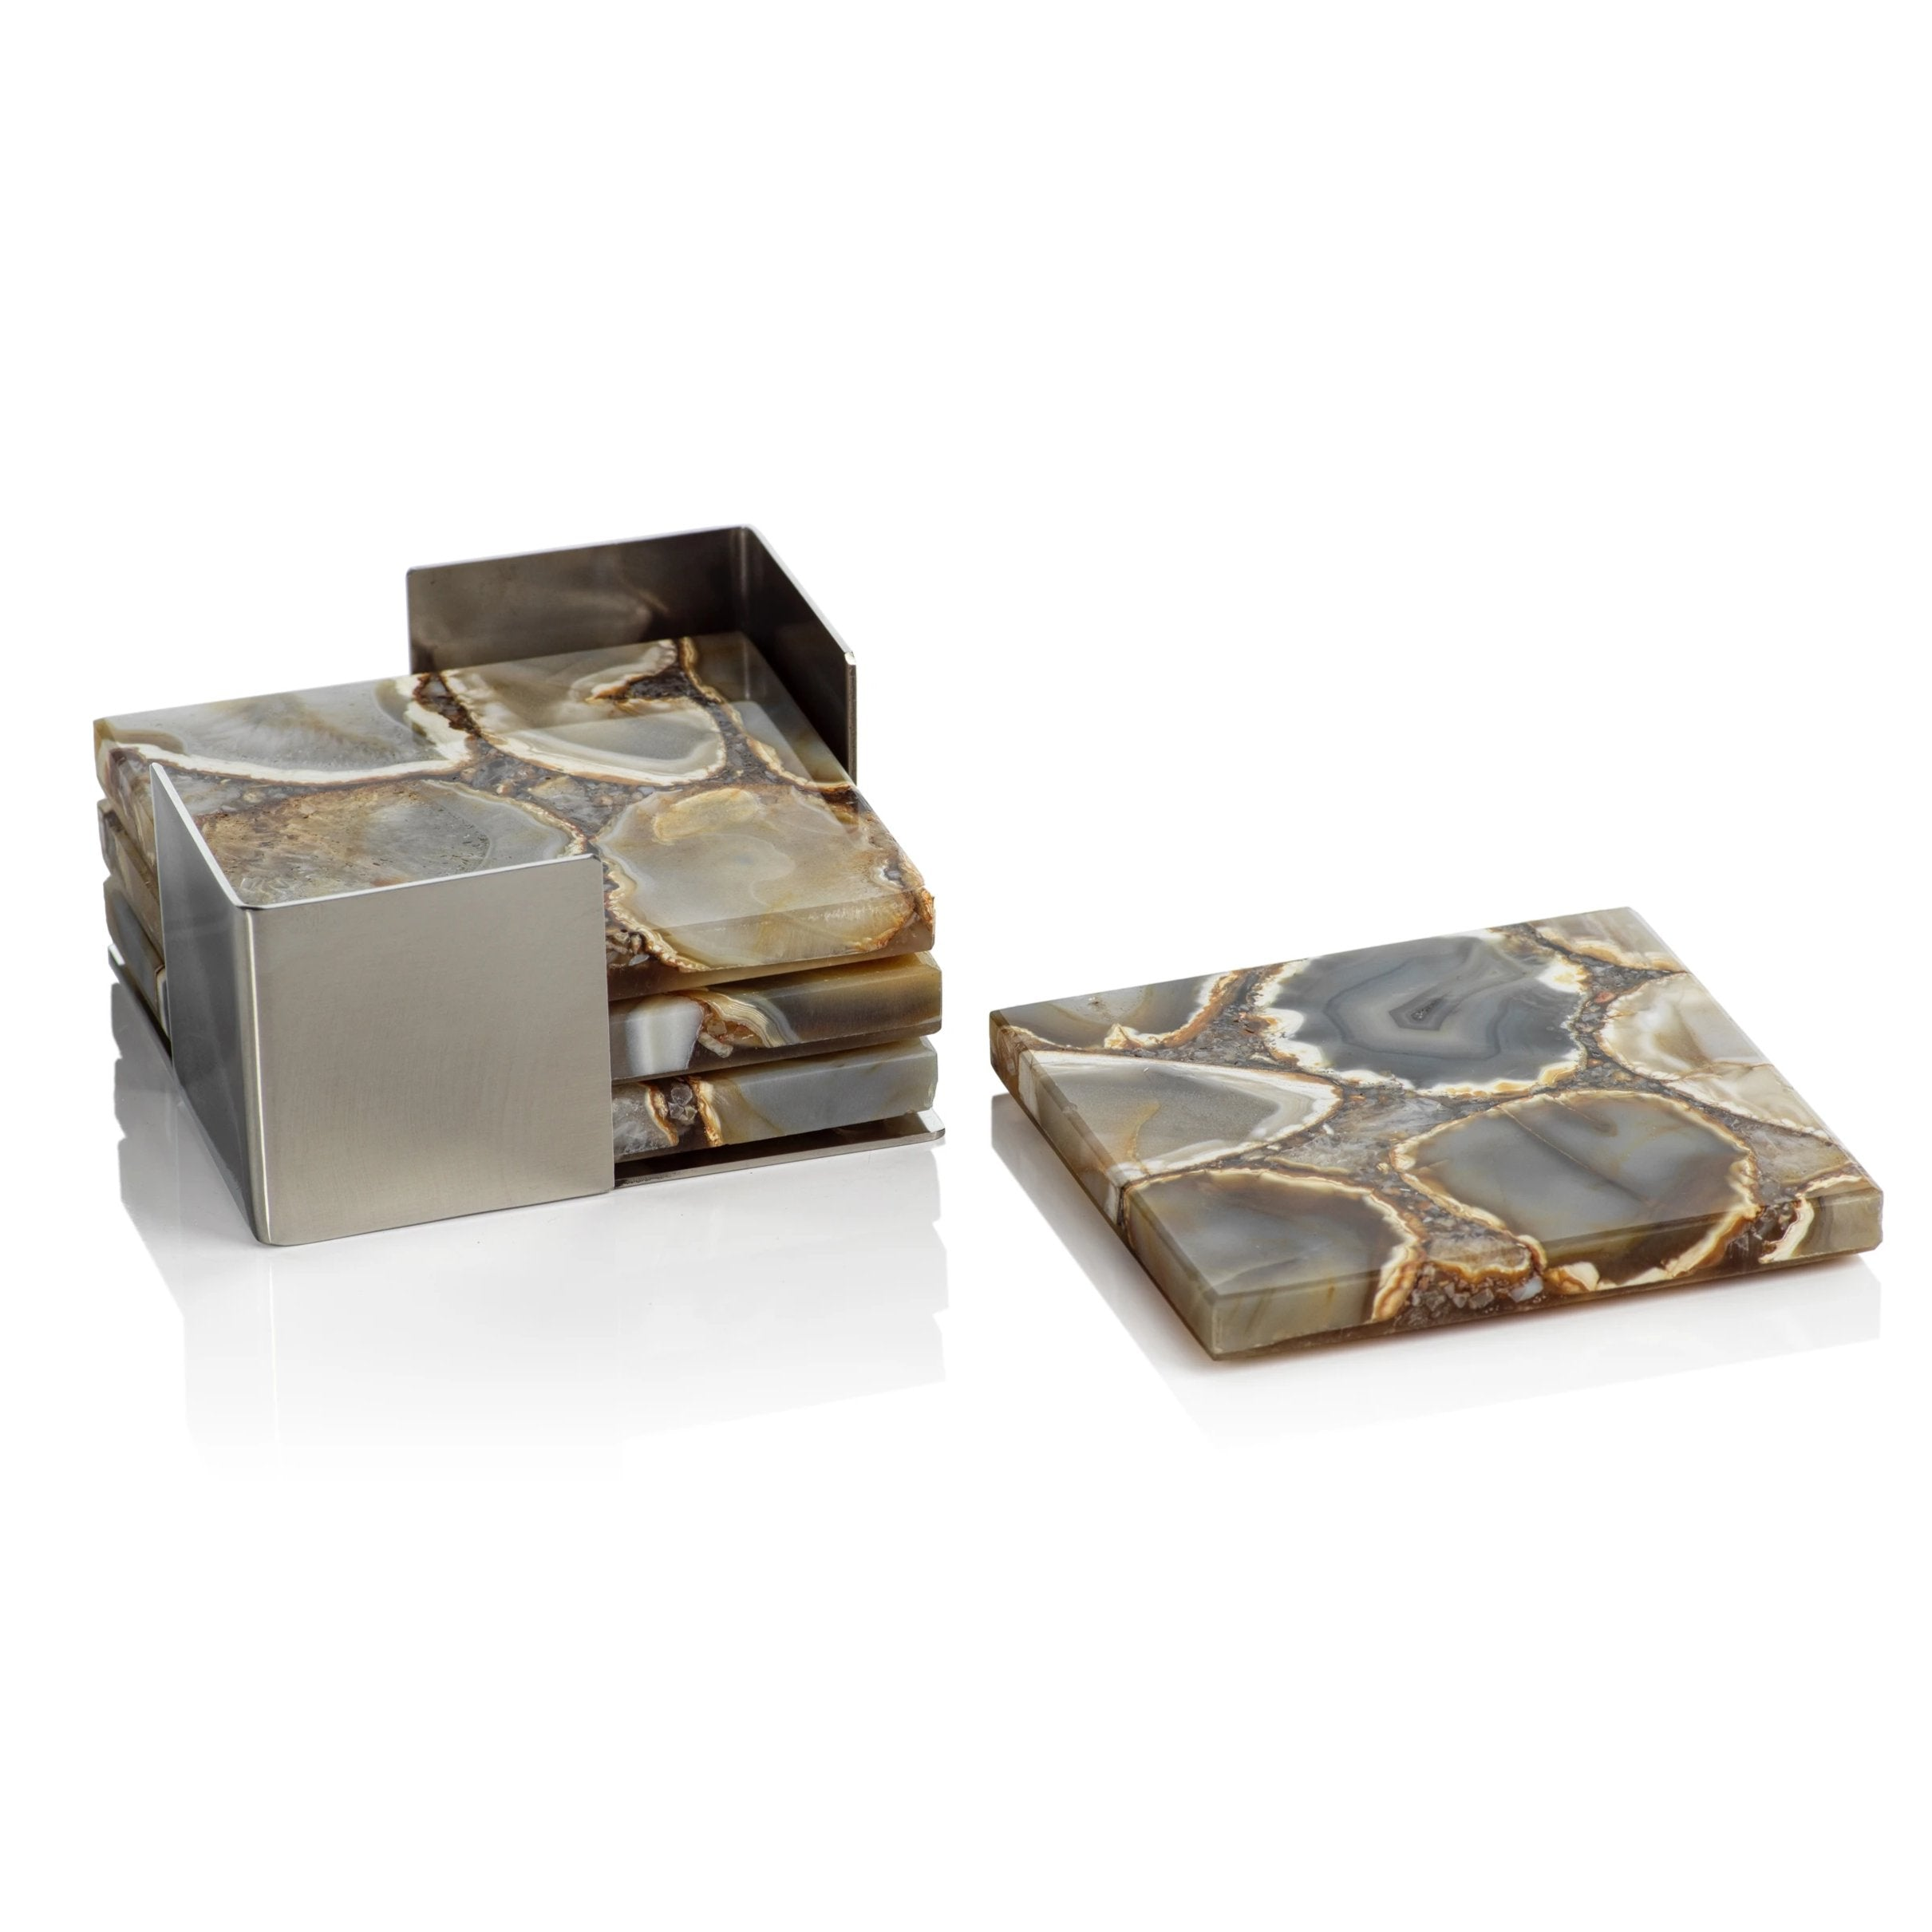 Set/4 Crete Agate Coasters on Metal Tray Taupe/Brown